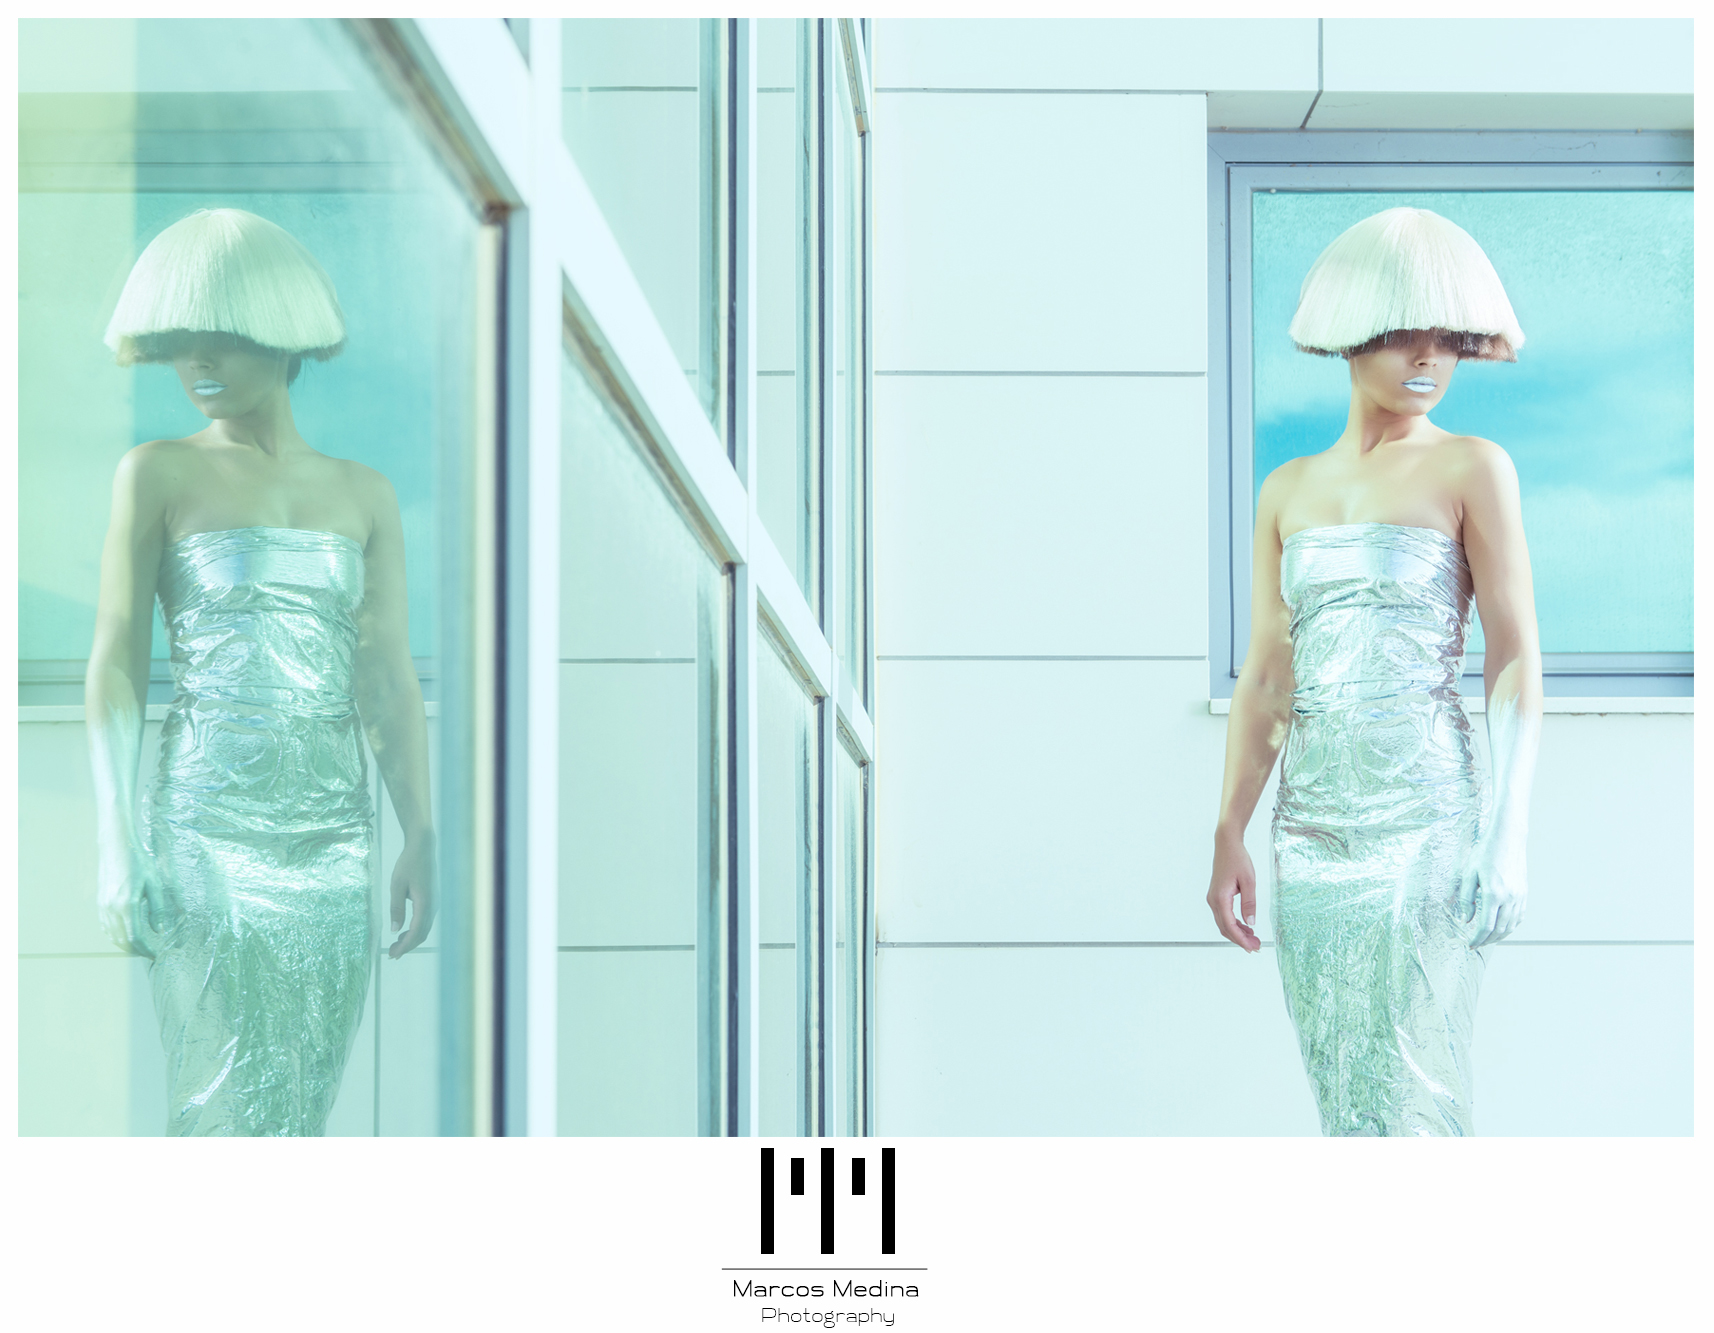 Marcos_Medina_Photography_Fashion_Futurista_3